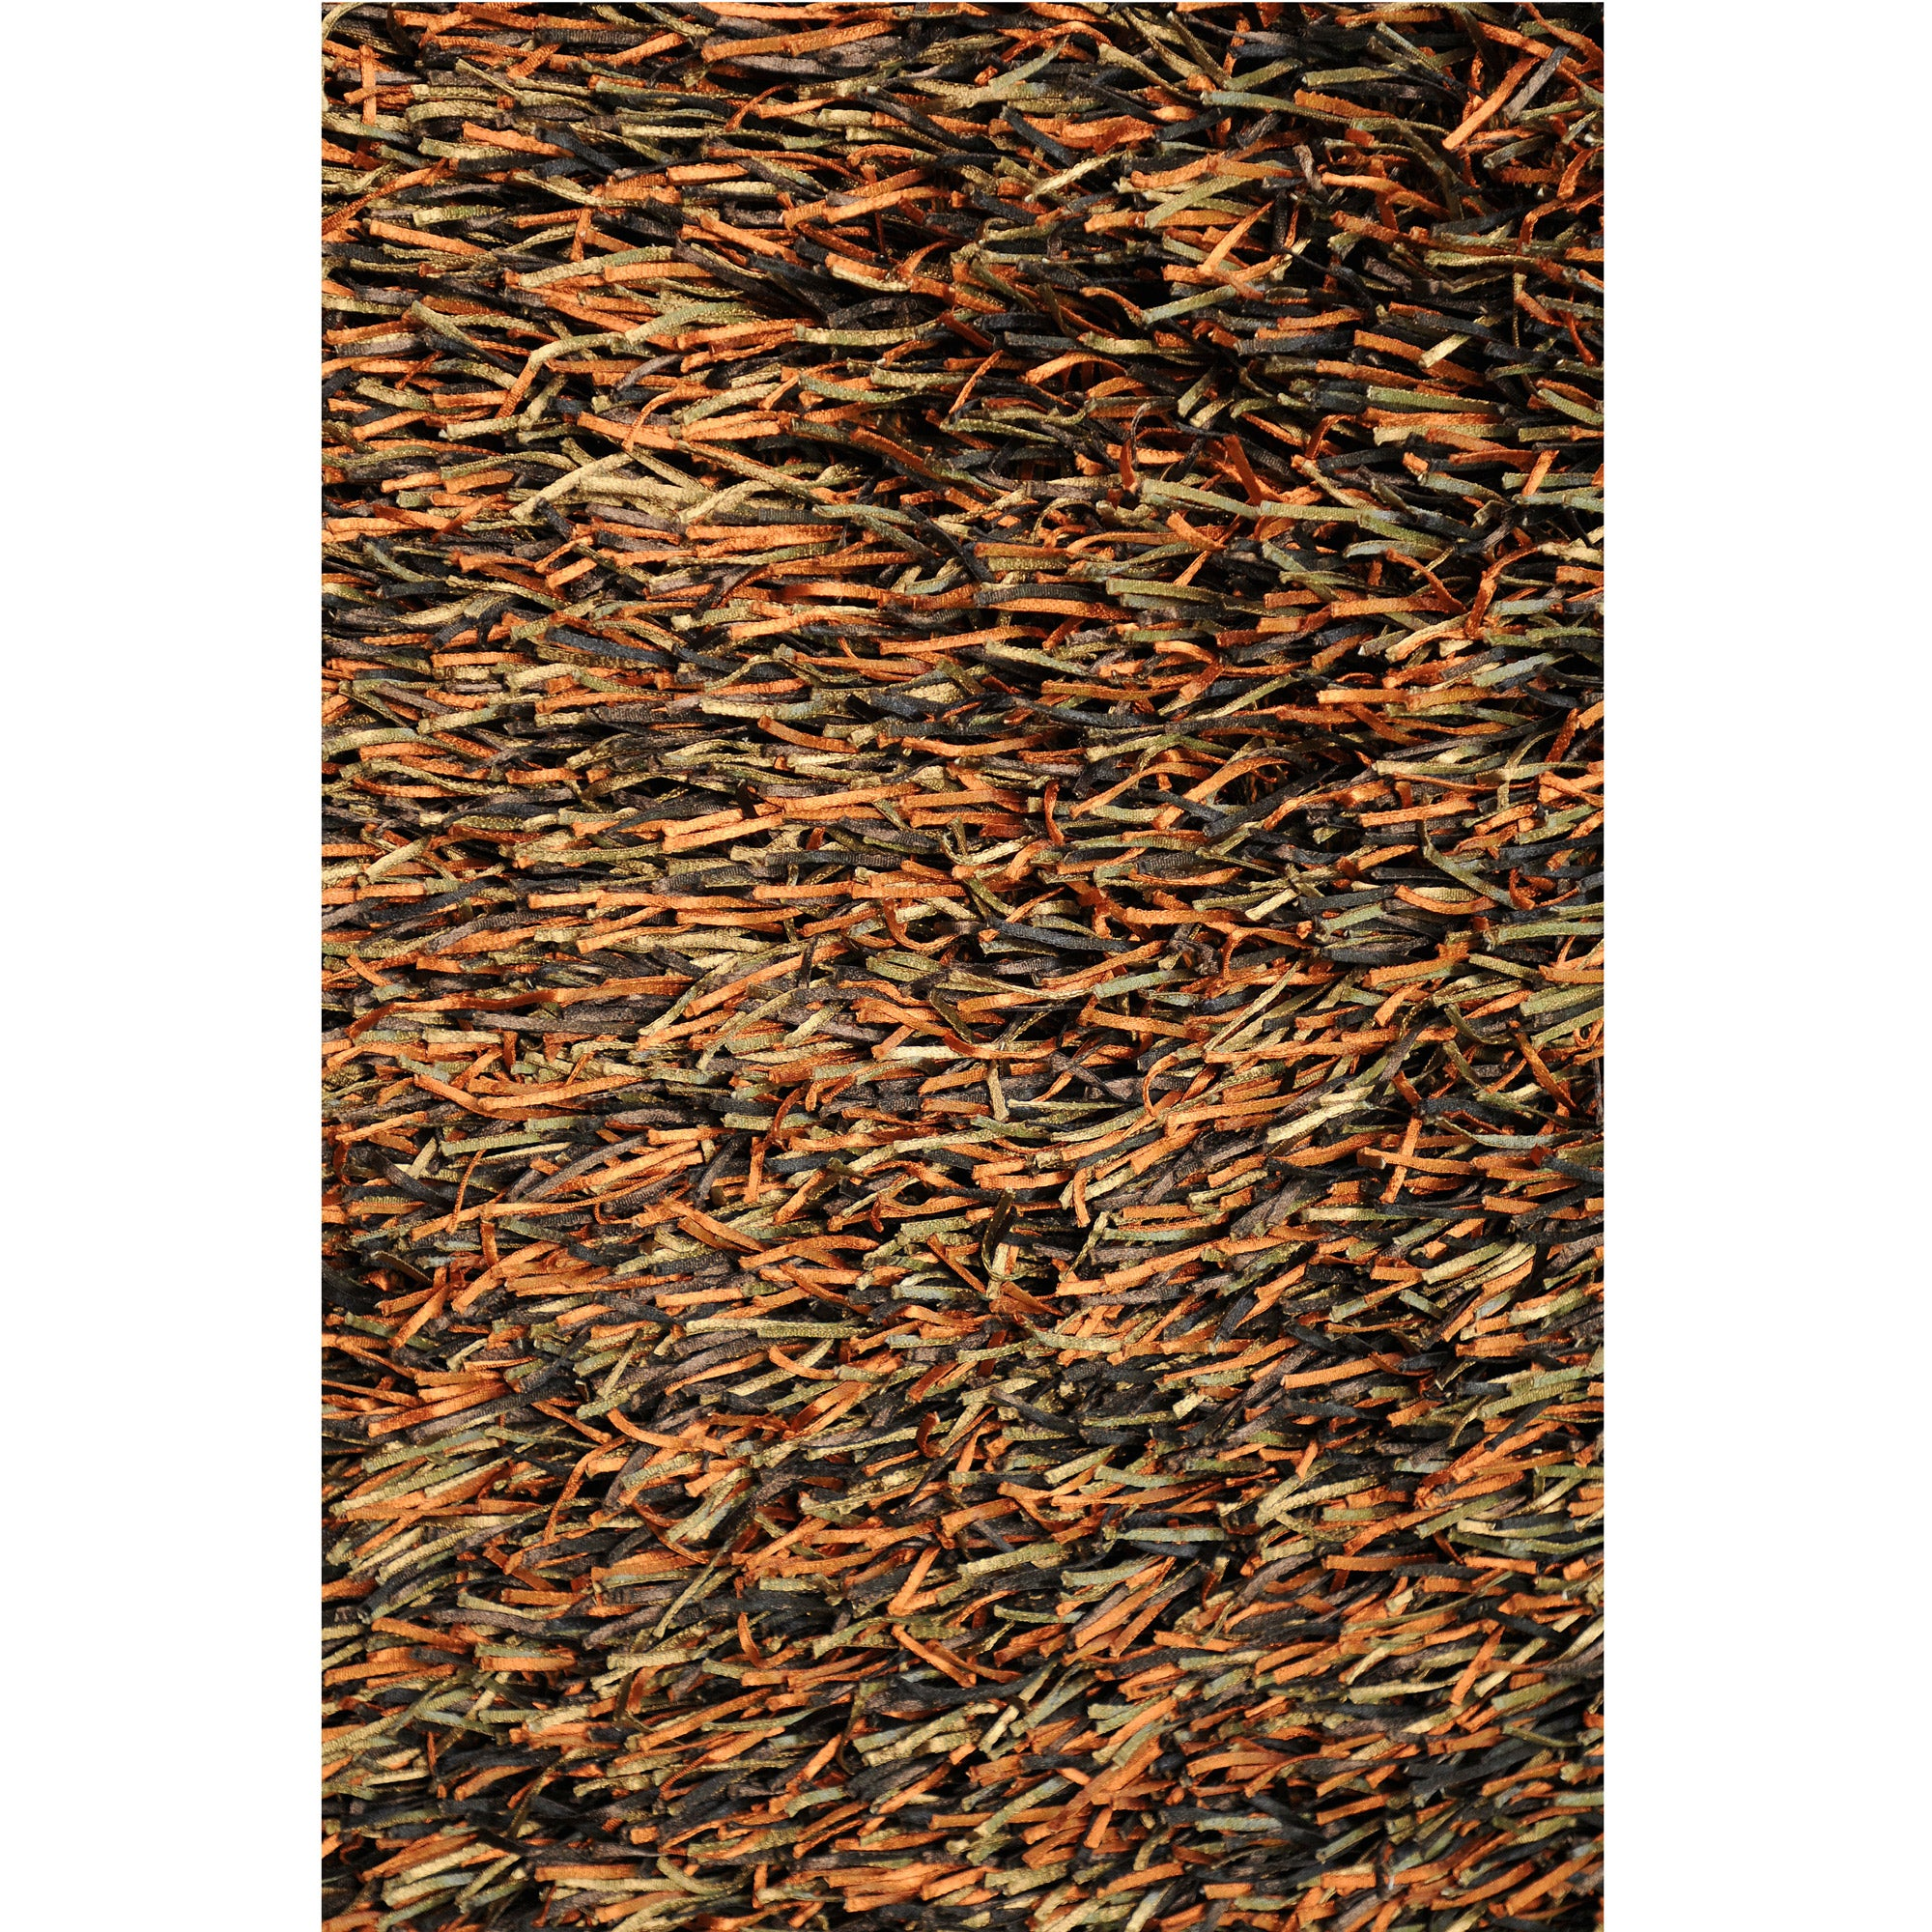 Hand-tufted Tilton Brown/ Burnt Orange Shag Rug (5u0026#39; x 7u0026#39;6) - Free Shipping Today - Overstock.com ...